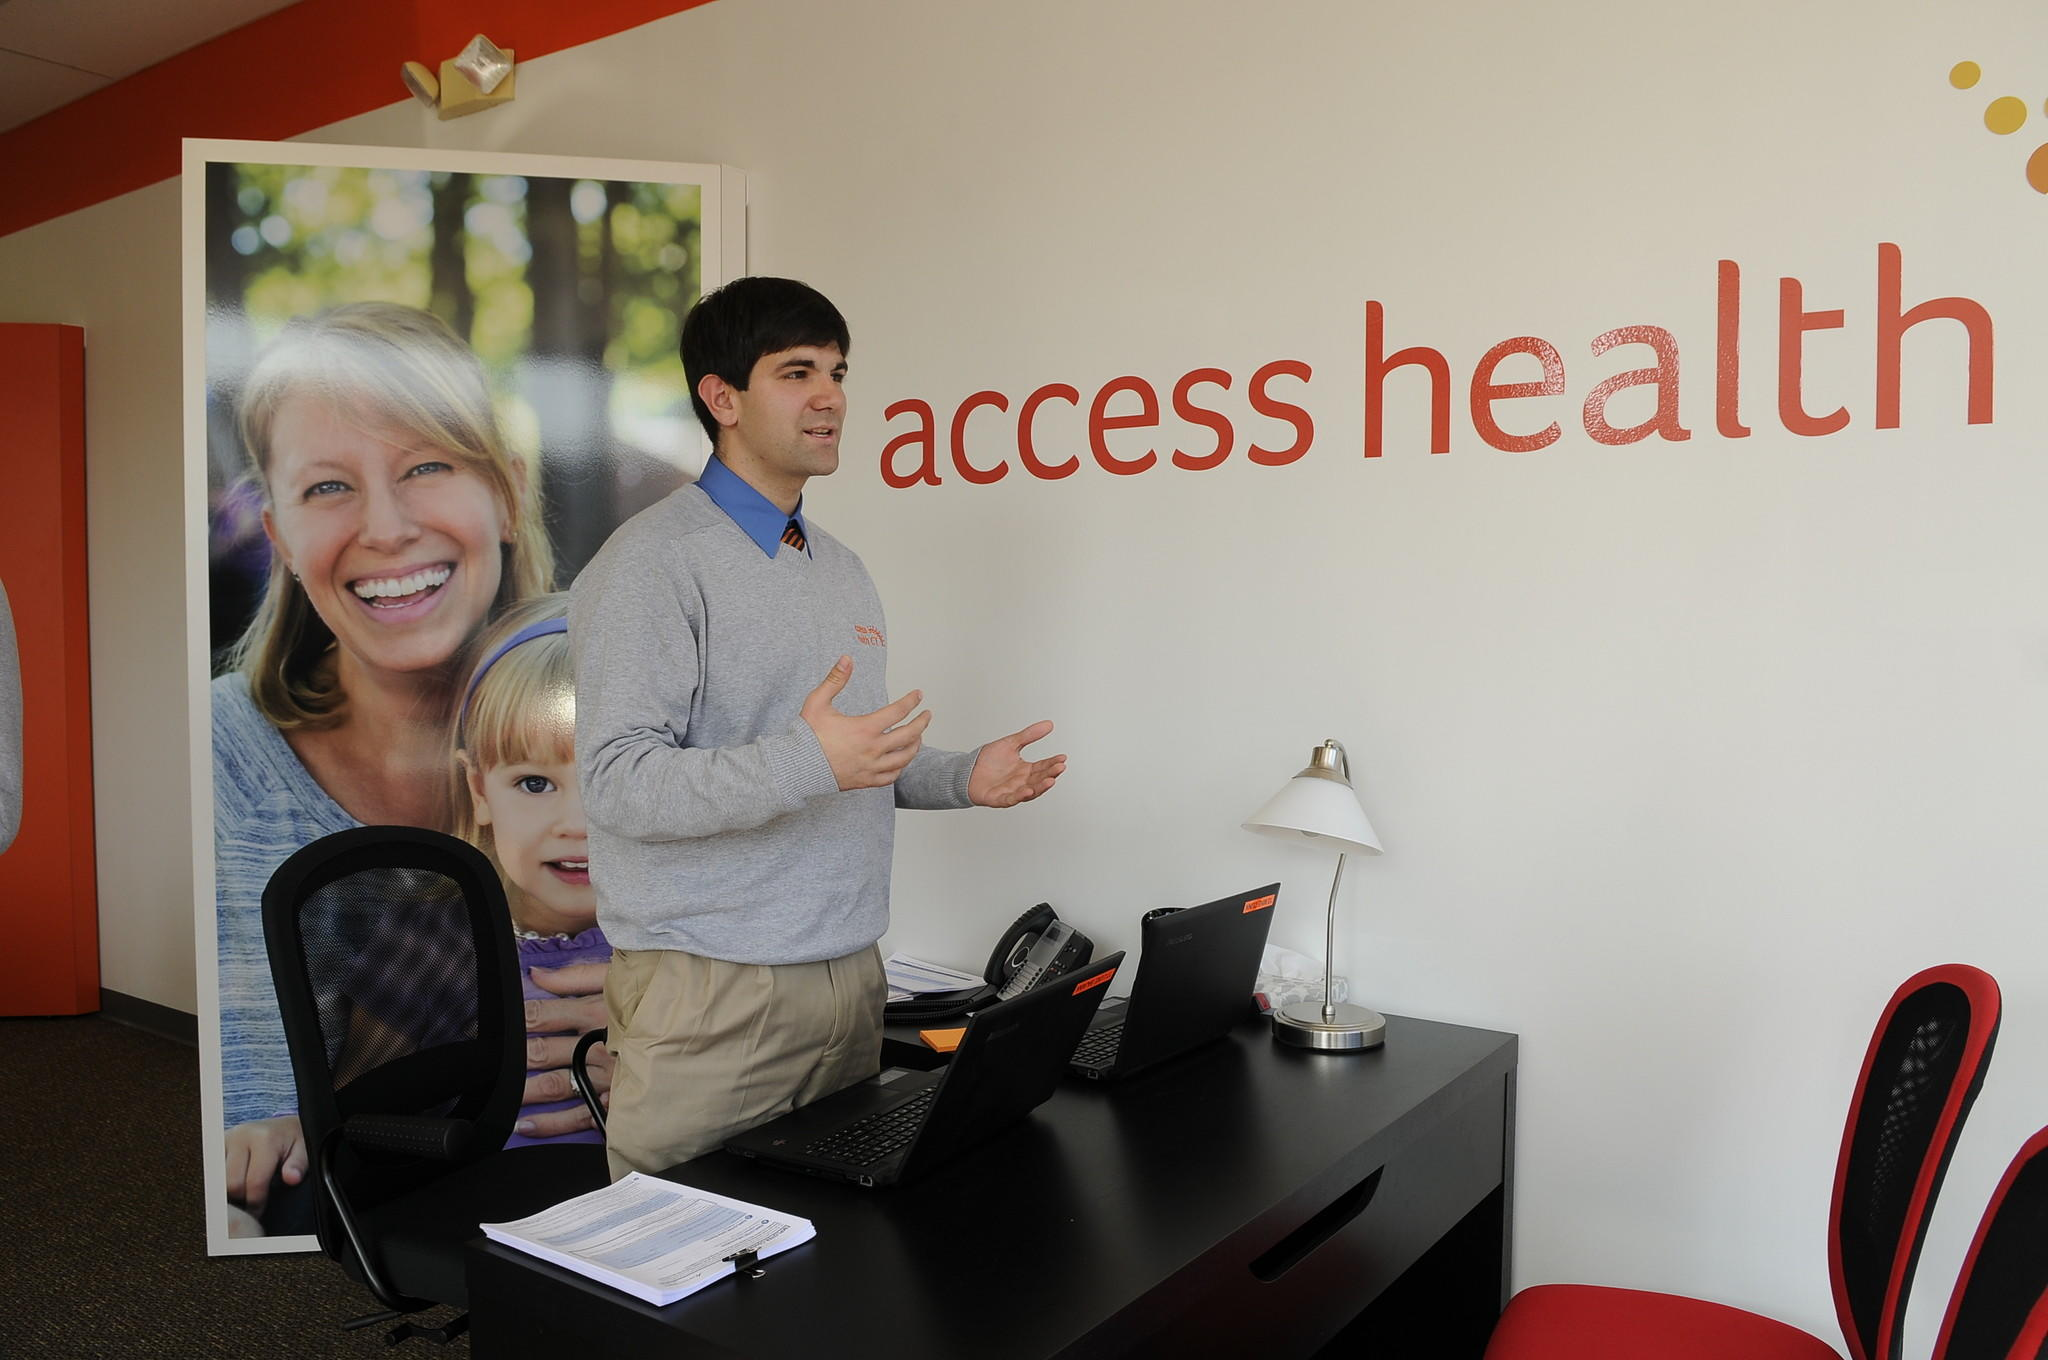 Outreach worker Luke Bajana stands inside Access Health CT's storefront in New Britain. About 85 percent of Connecticut's uninsured live in six cities targeted by Access Health: Hartford, Bridgeport, New Haven, Stamford, Waterbury and New Britain.